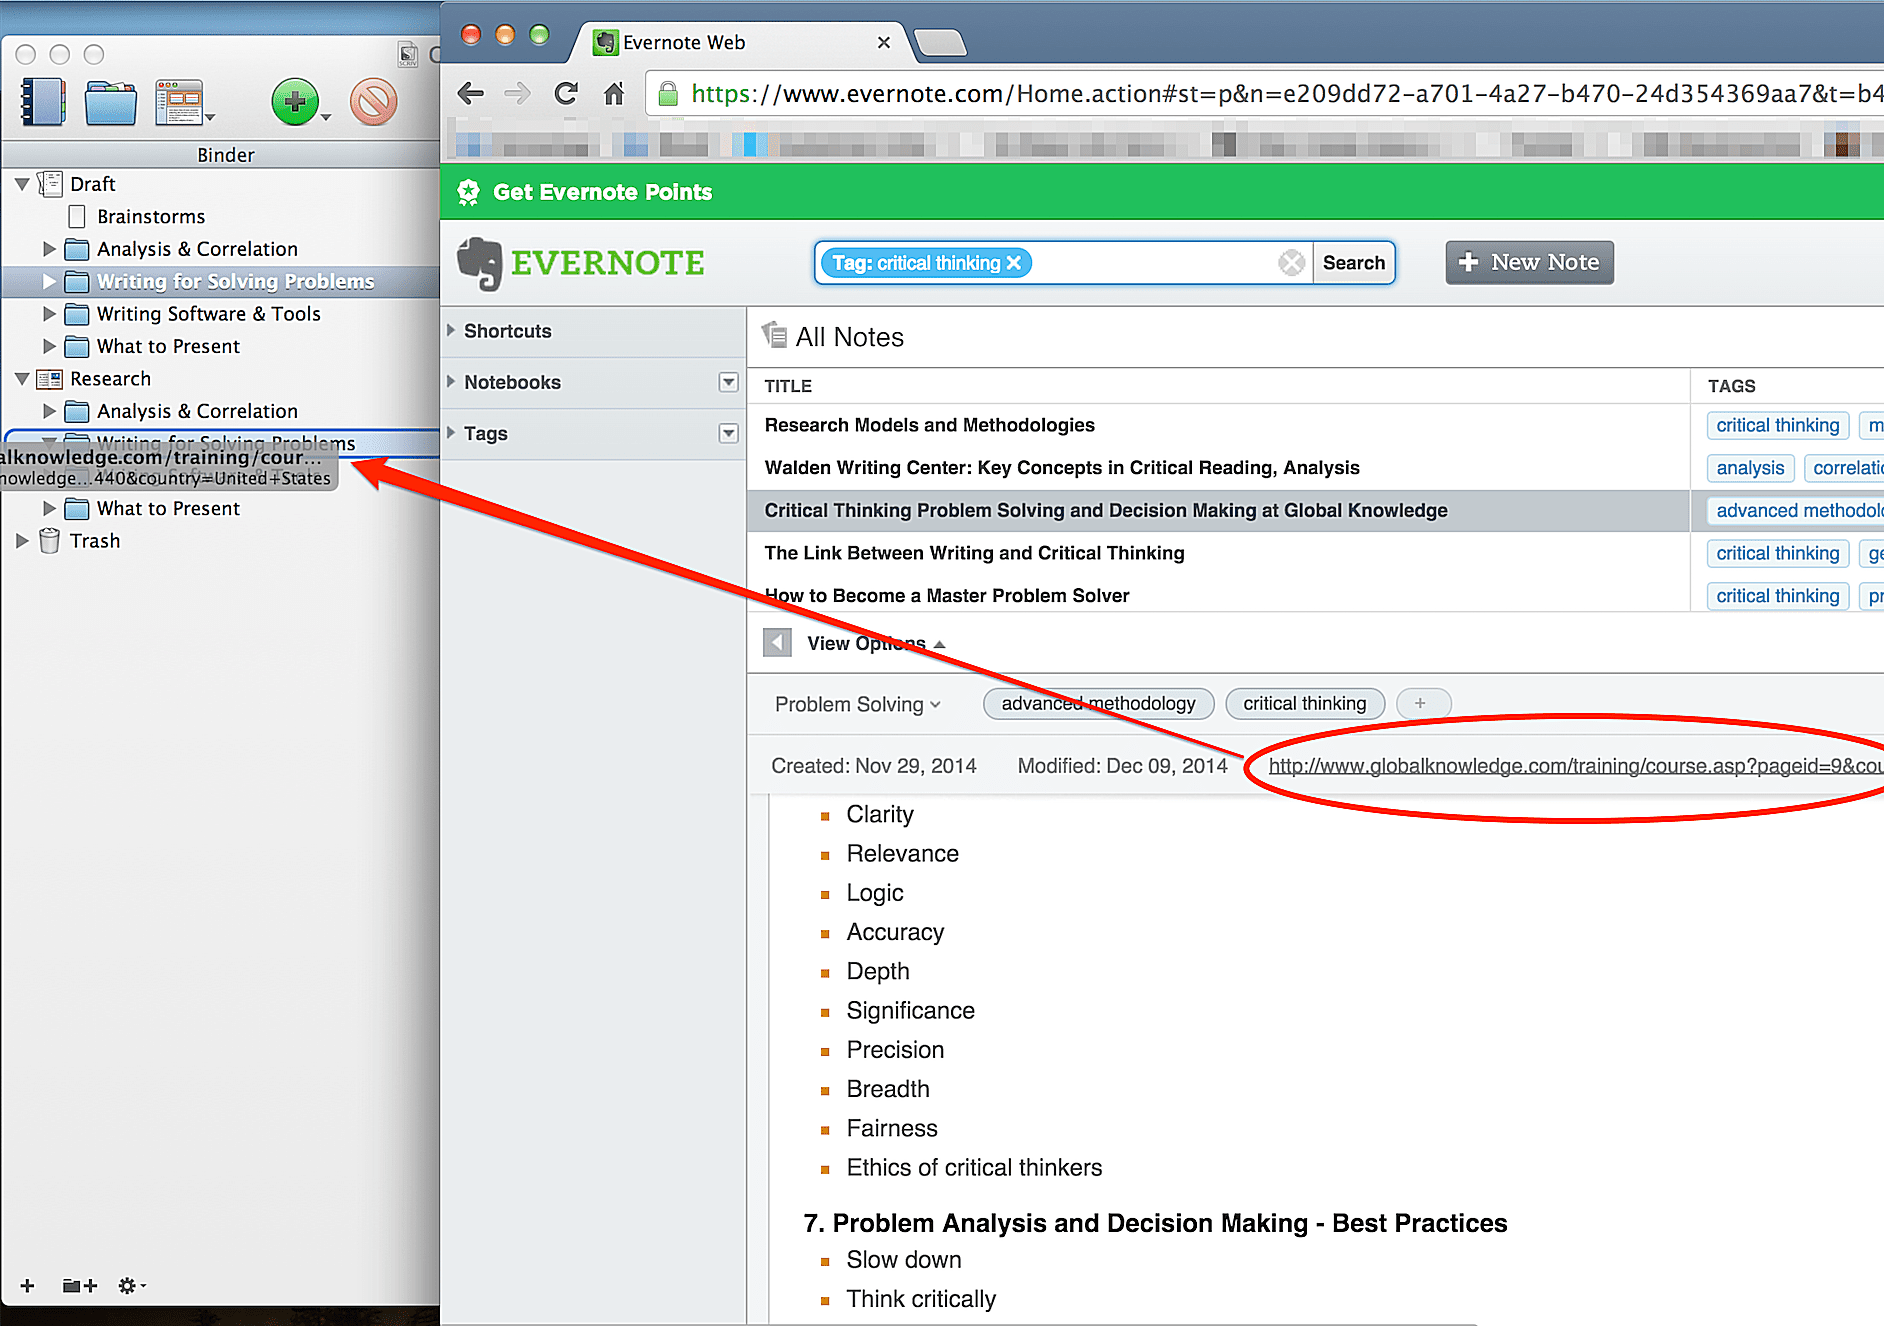 How to drag and drop individual notes from Evernote to Scrivener